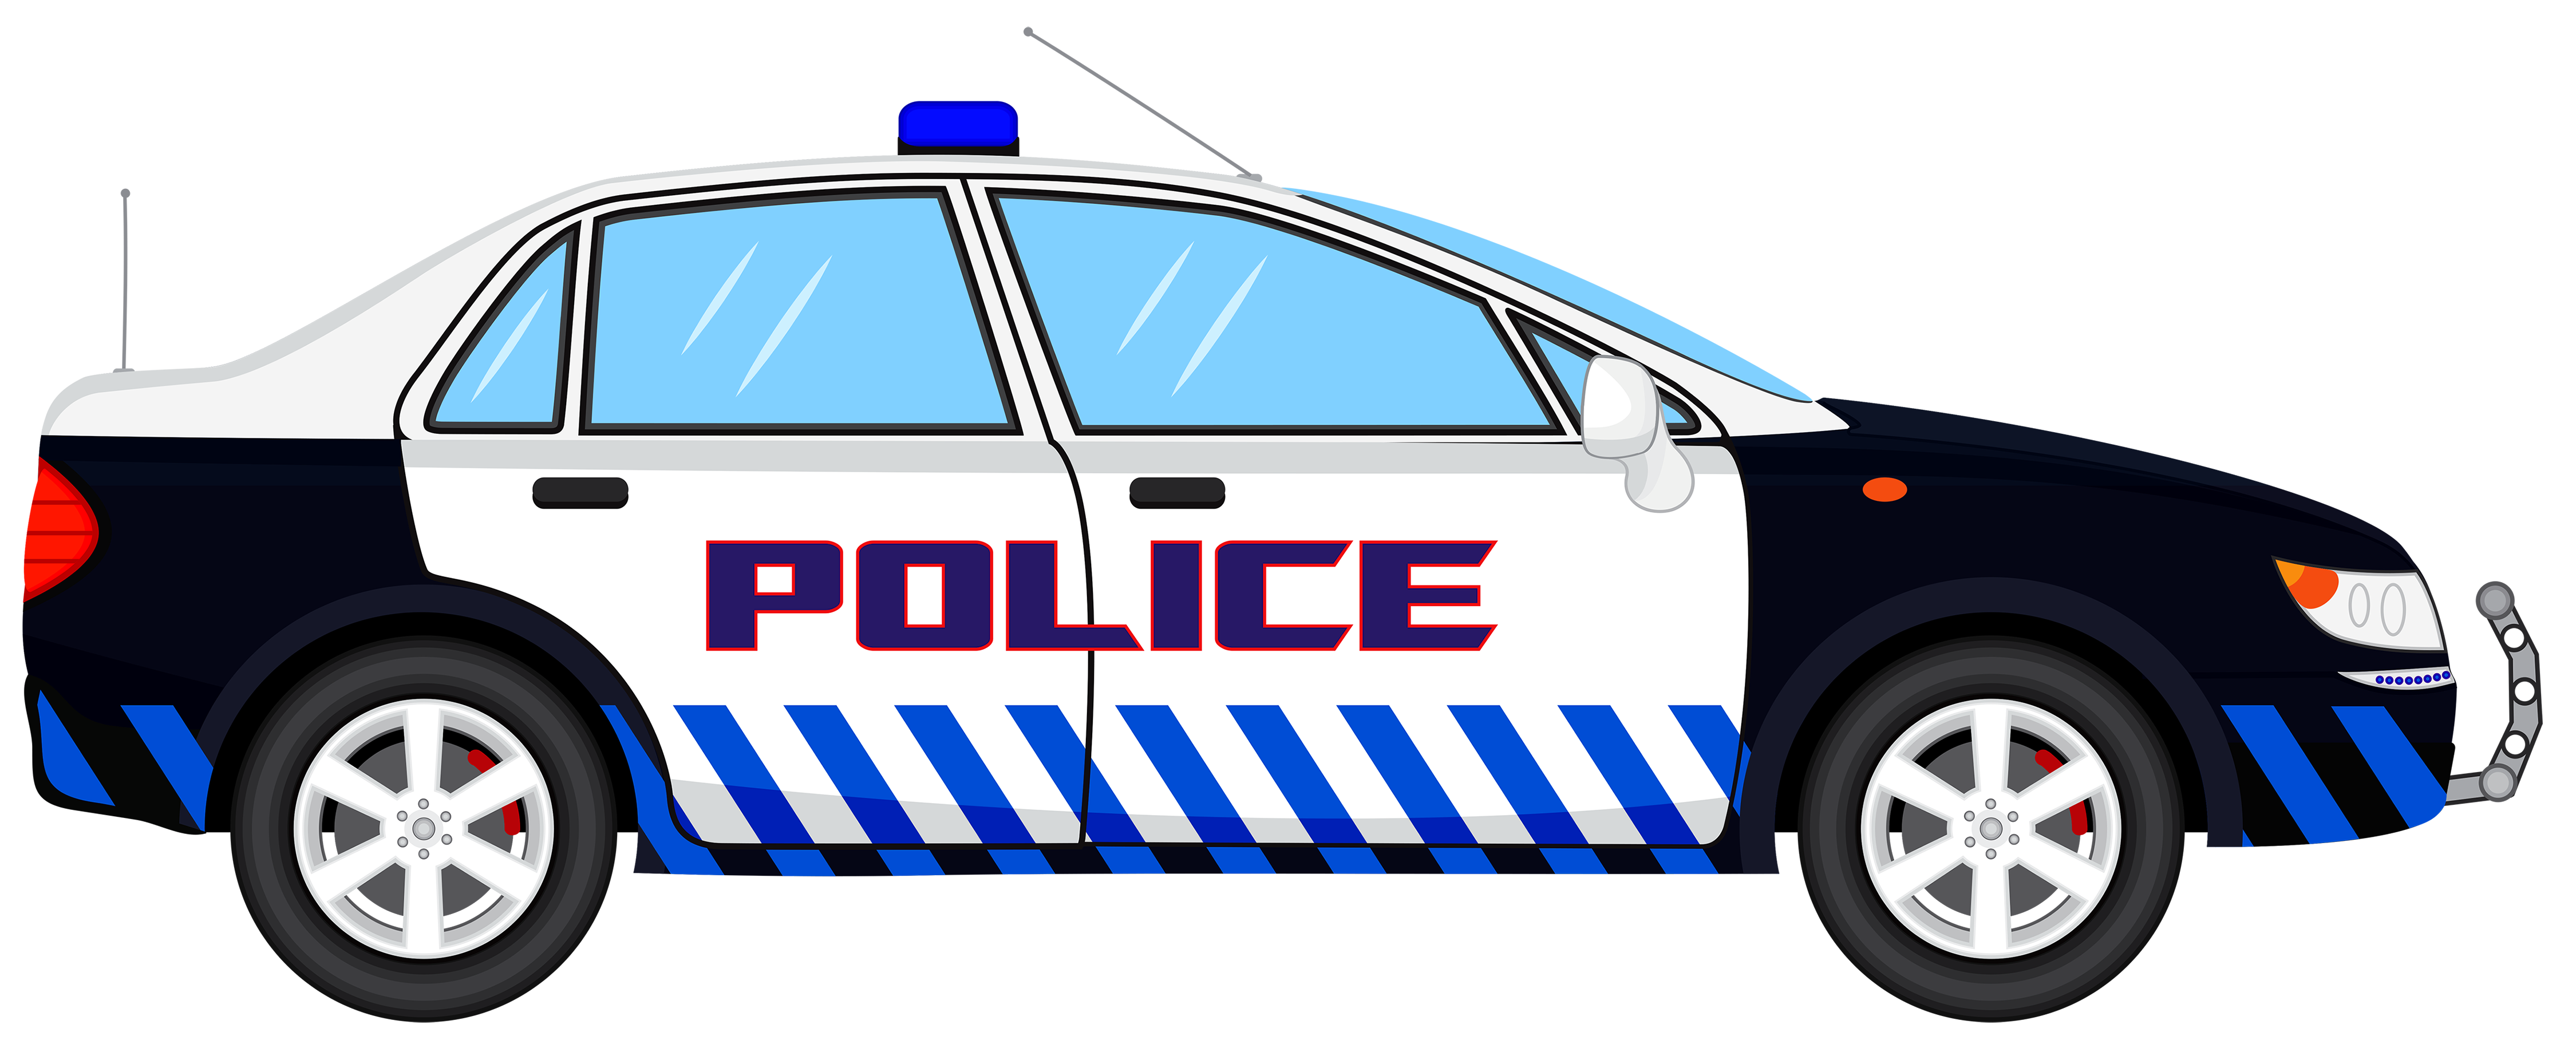 1317 Police Car free clipart.